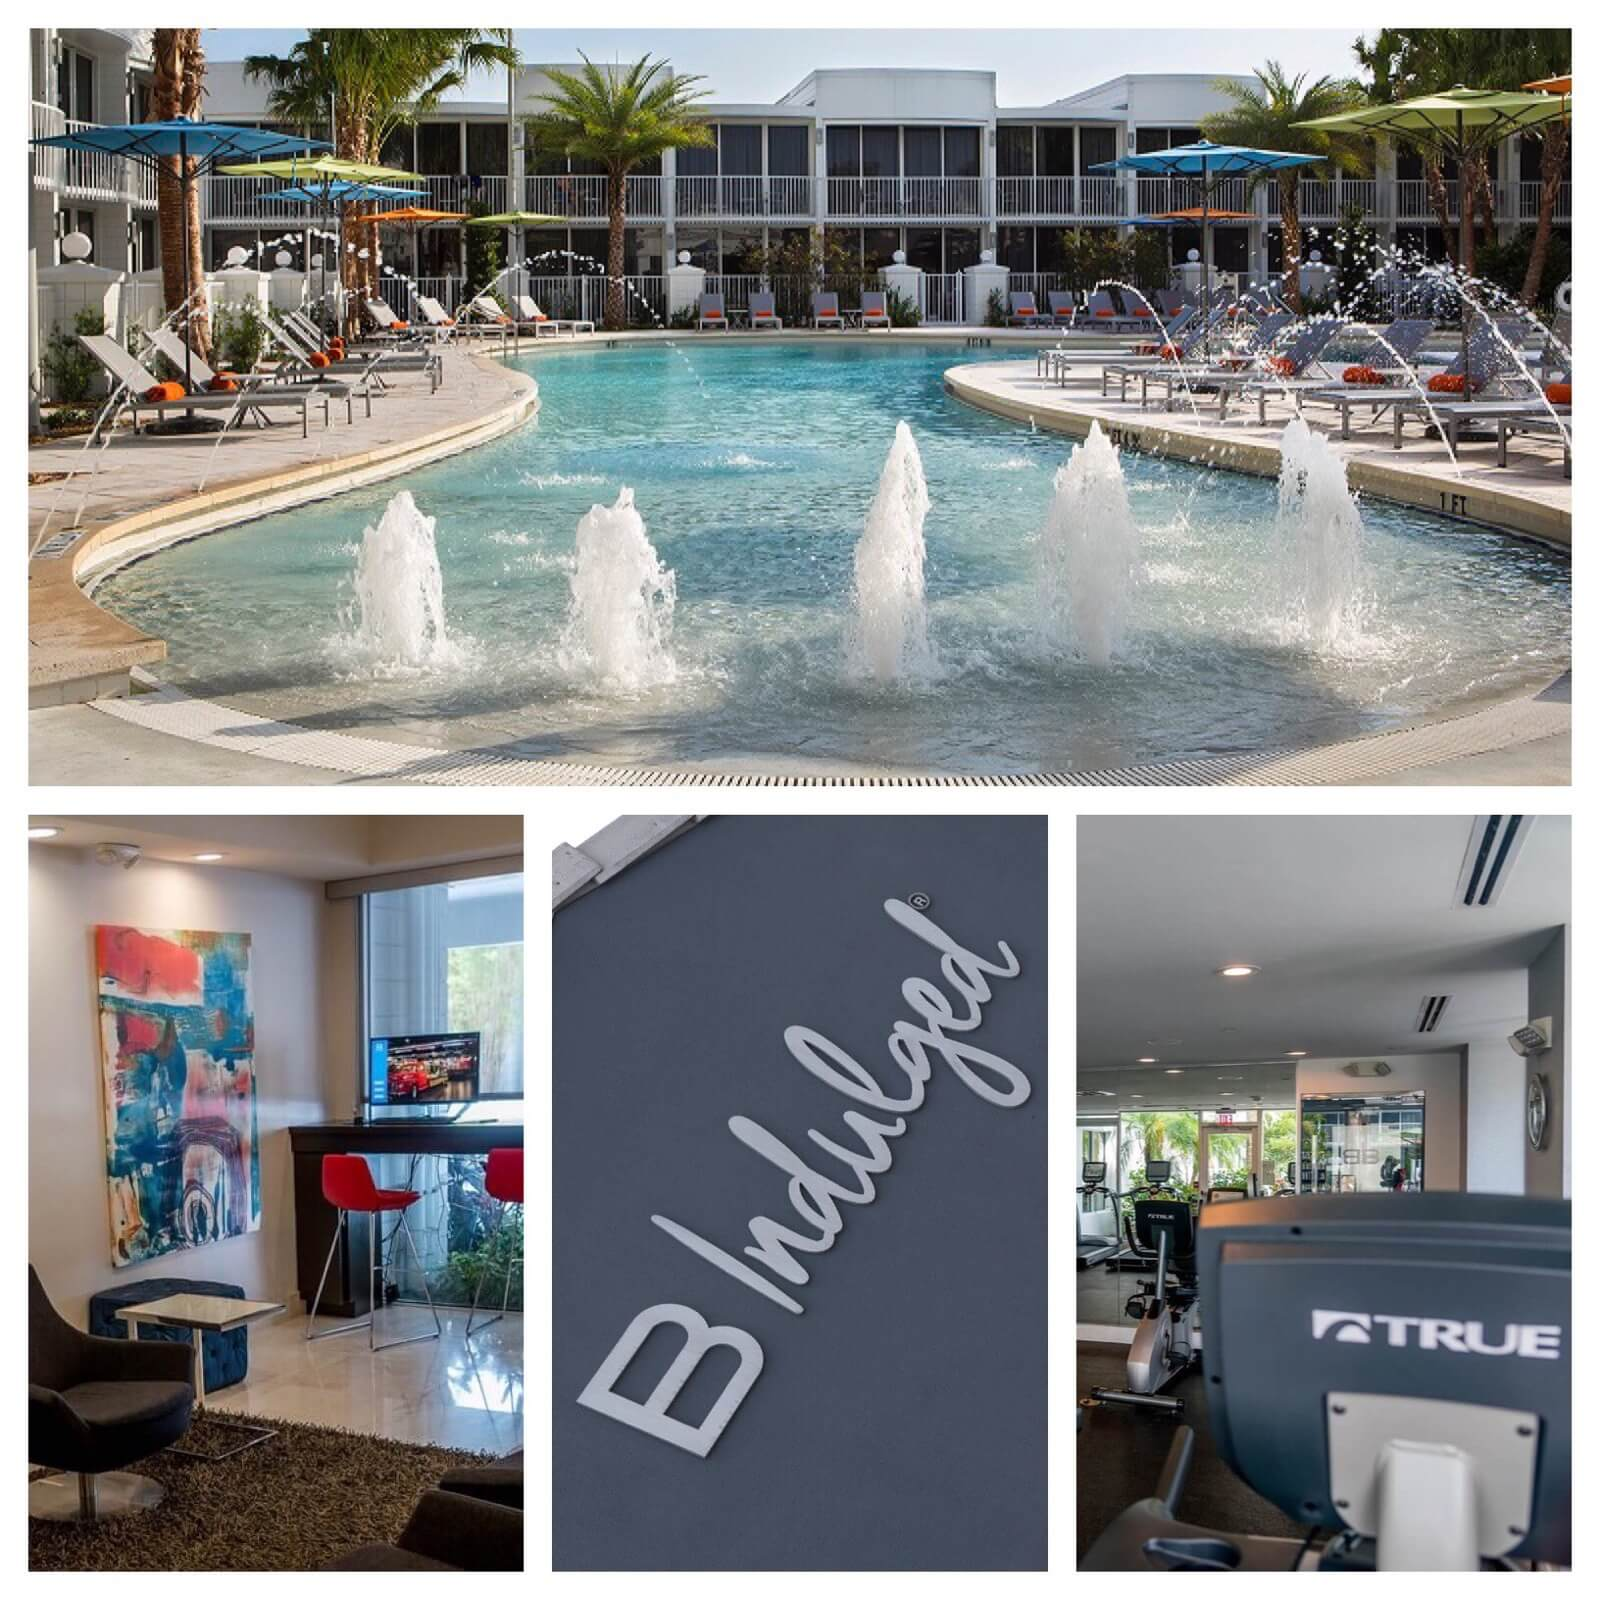 Swimming pool and amenities at B Resort and Spa - Lake Buena Vista - Disney Springs: an official Good Neighbor hotel offering exclusive Walt Disney World Resort benefits.